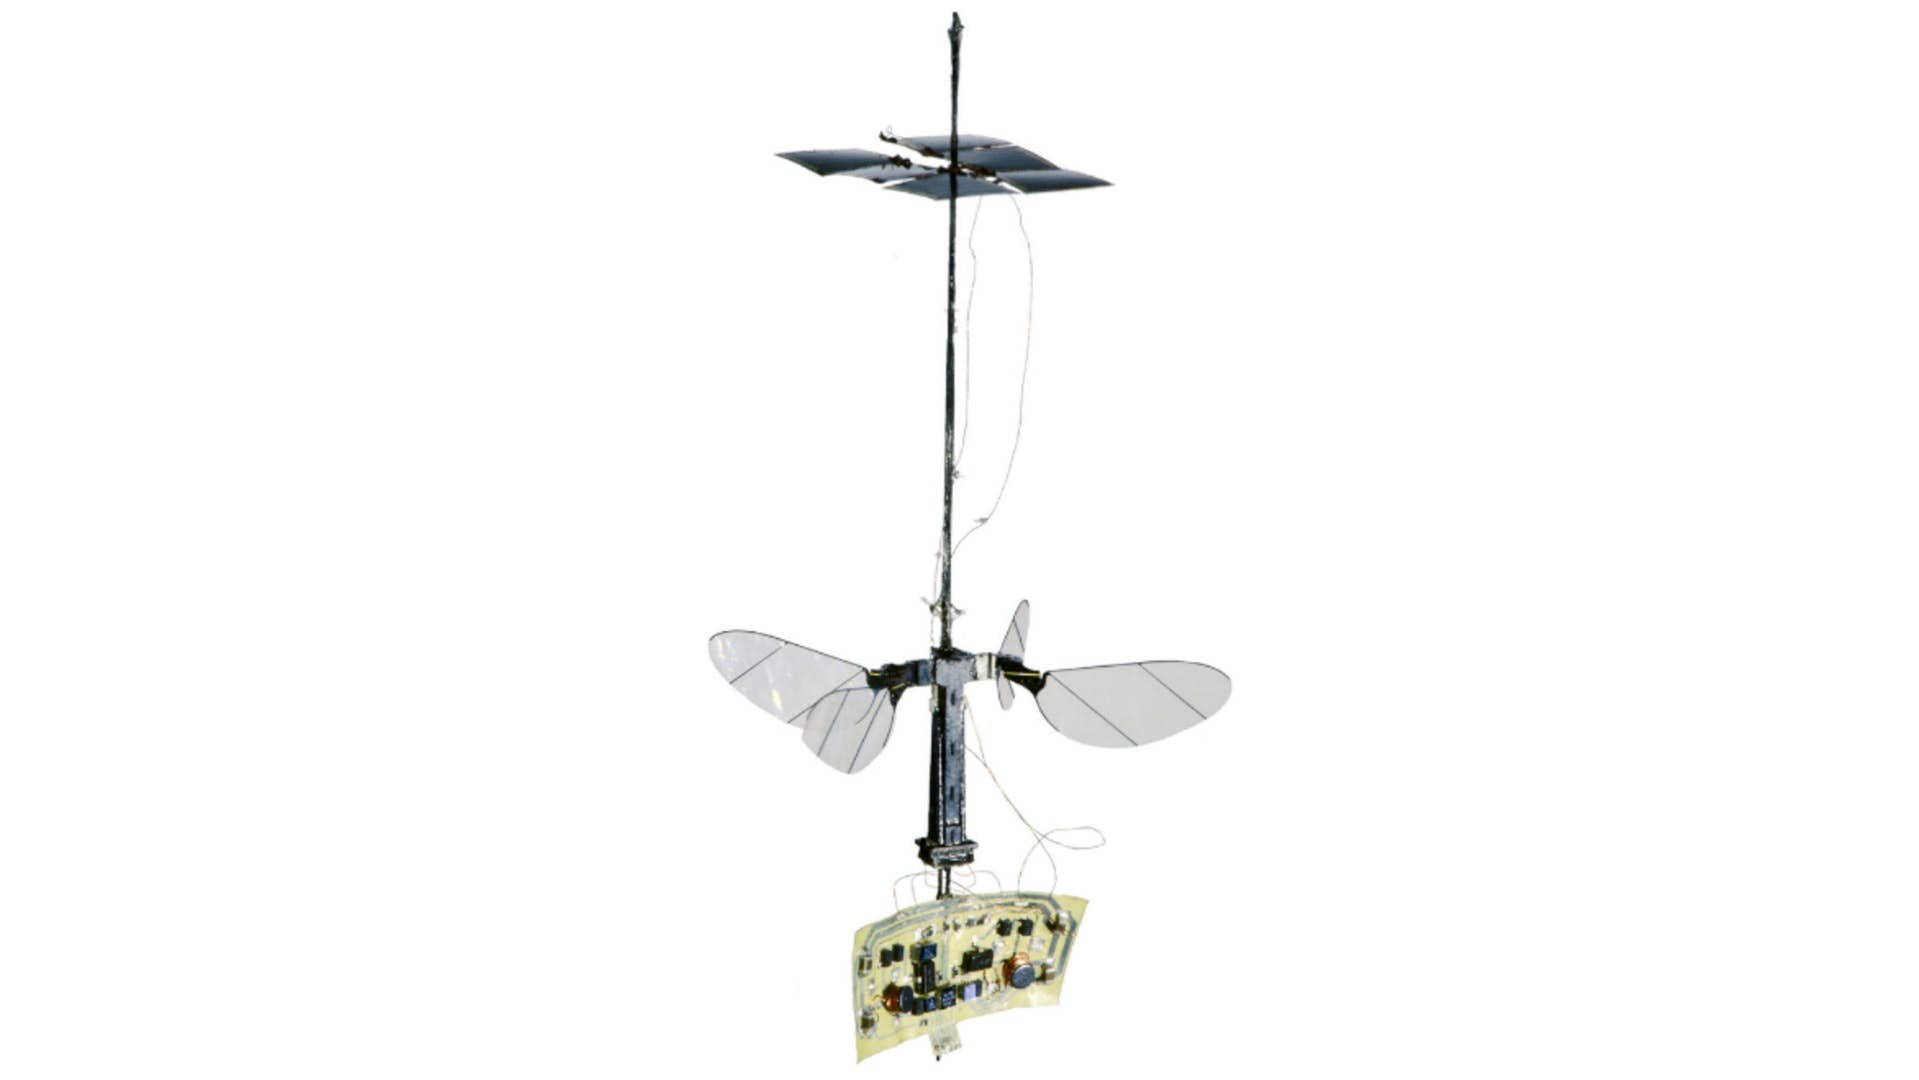 Robobee Was Able To Fly Tether-Free Because Of Tiny Solar Panels